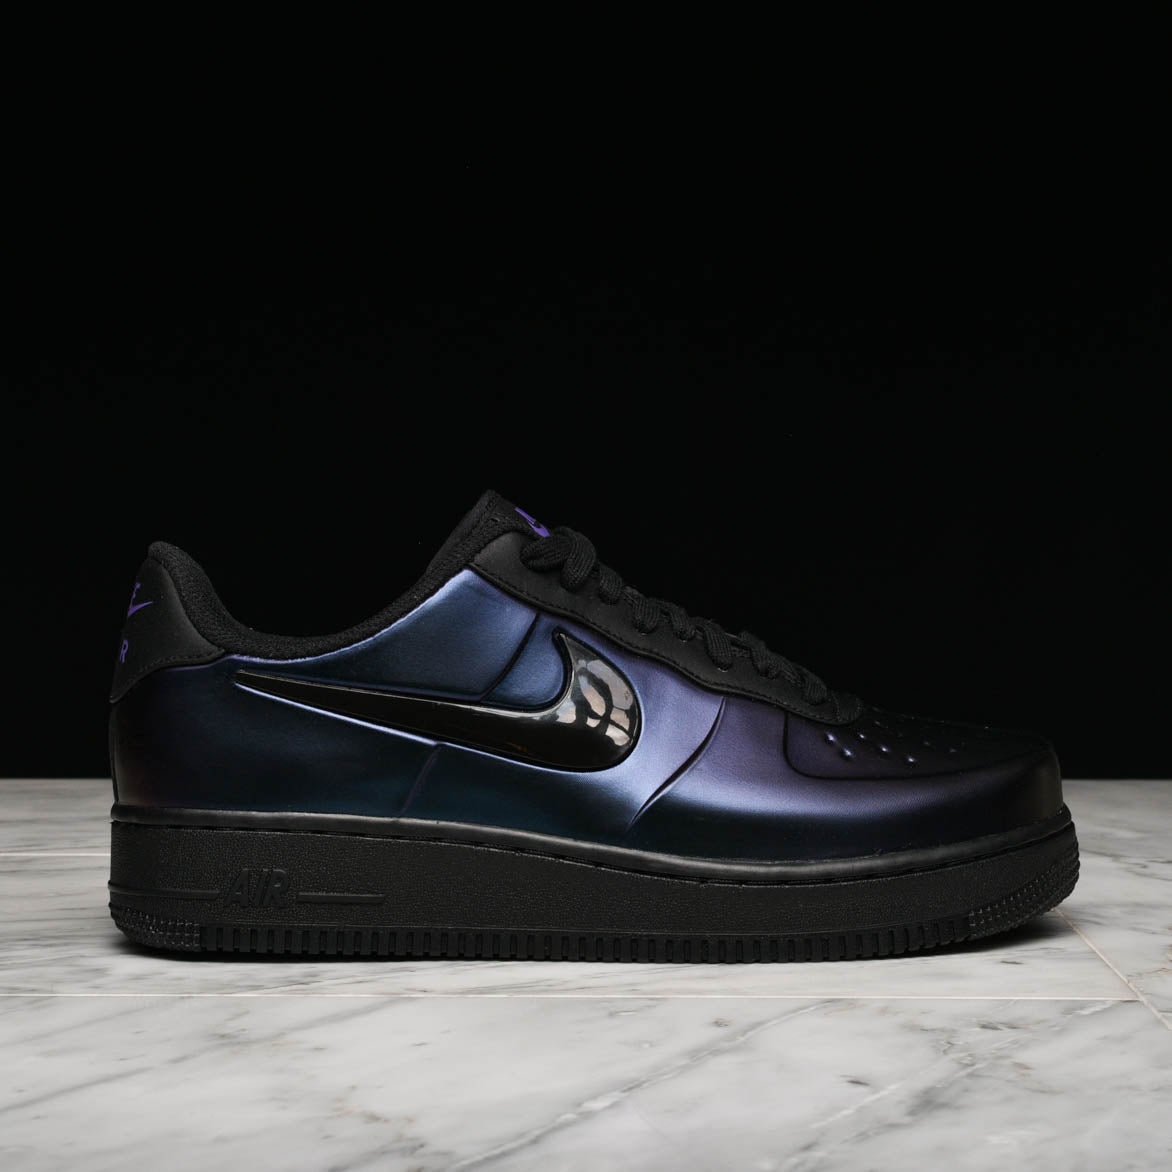 8992343cb55cd AIR FORCE 1 FOAMPOSITE PRO CUP